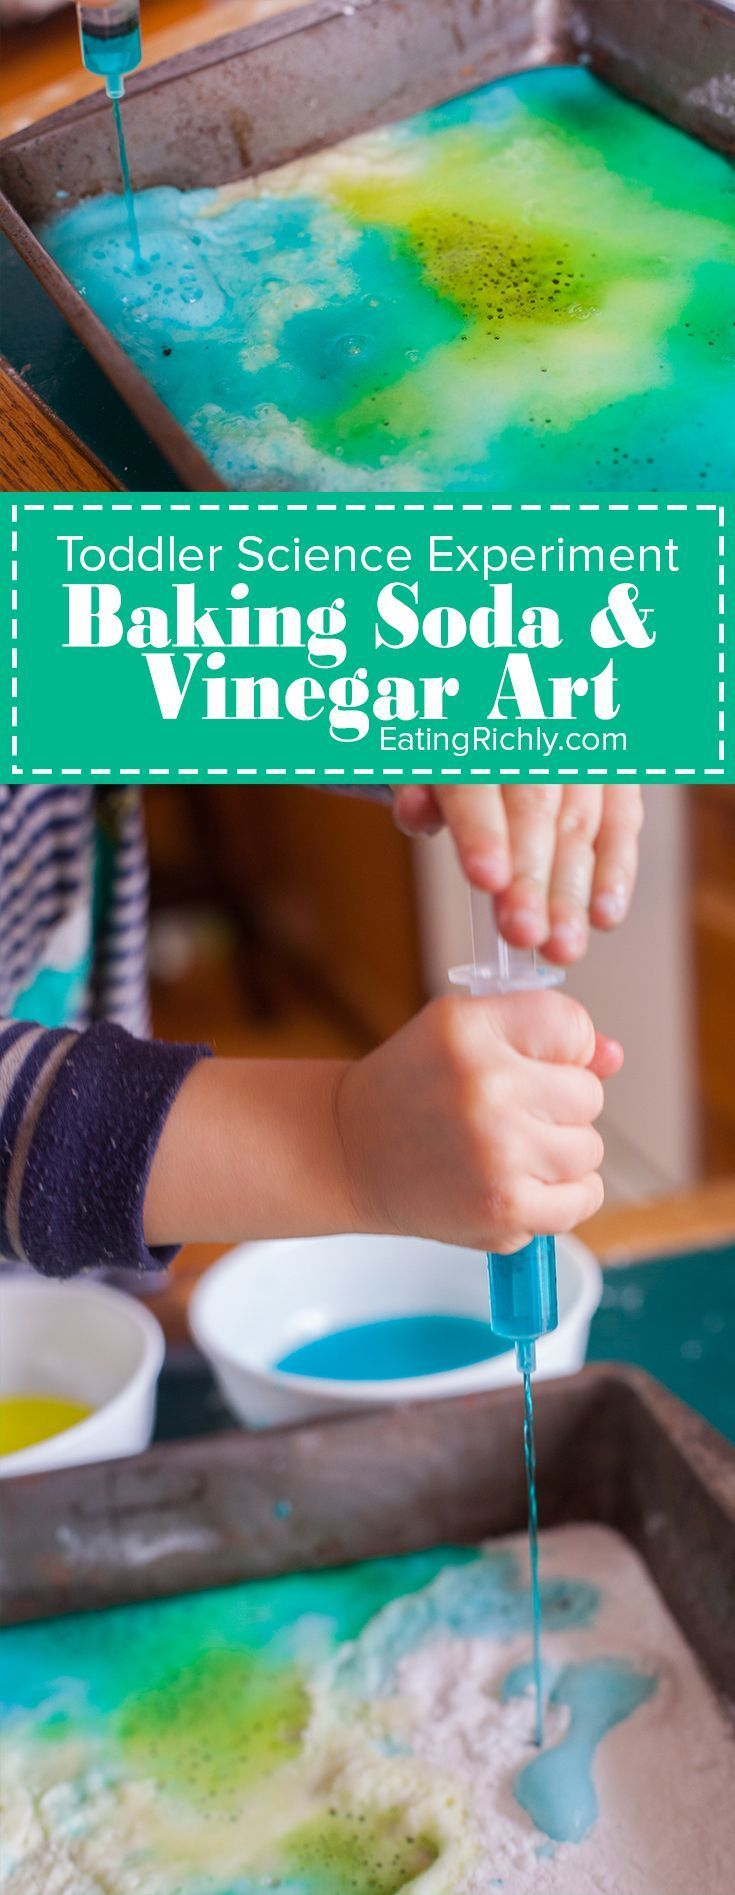 This toddler science experiment teaches how baking soda and vinegar react, while…